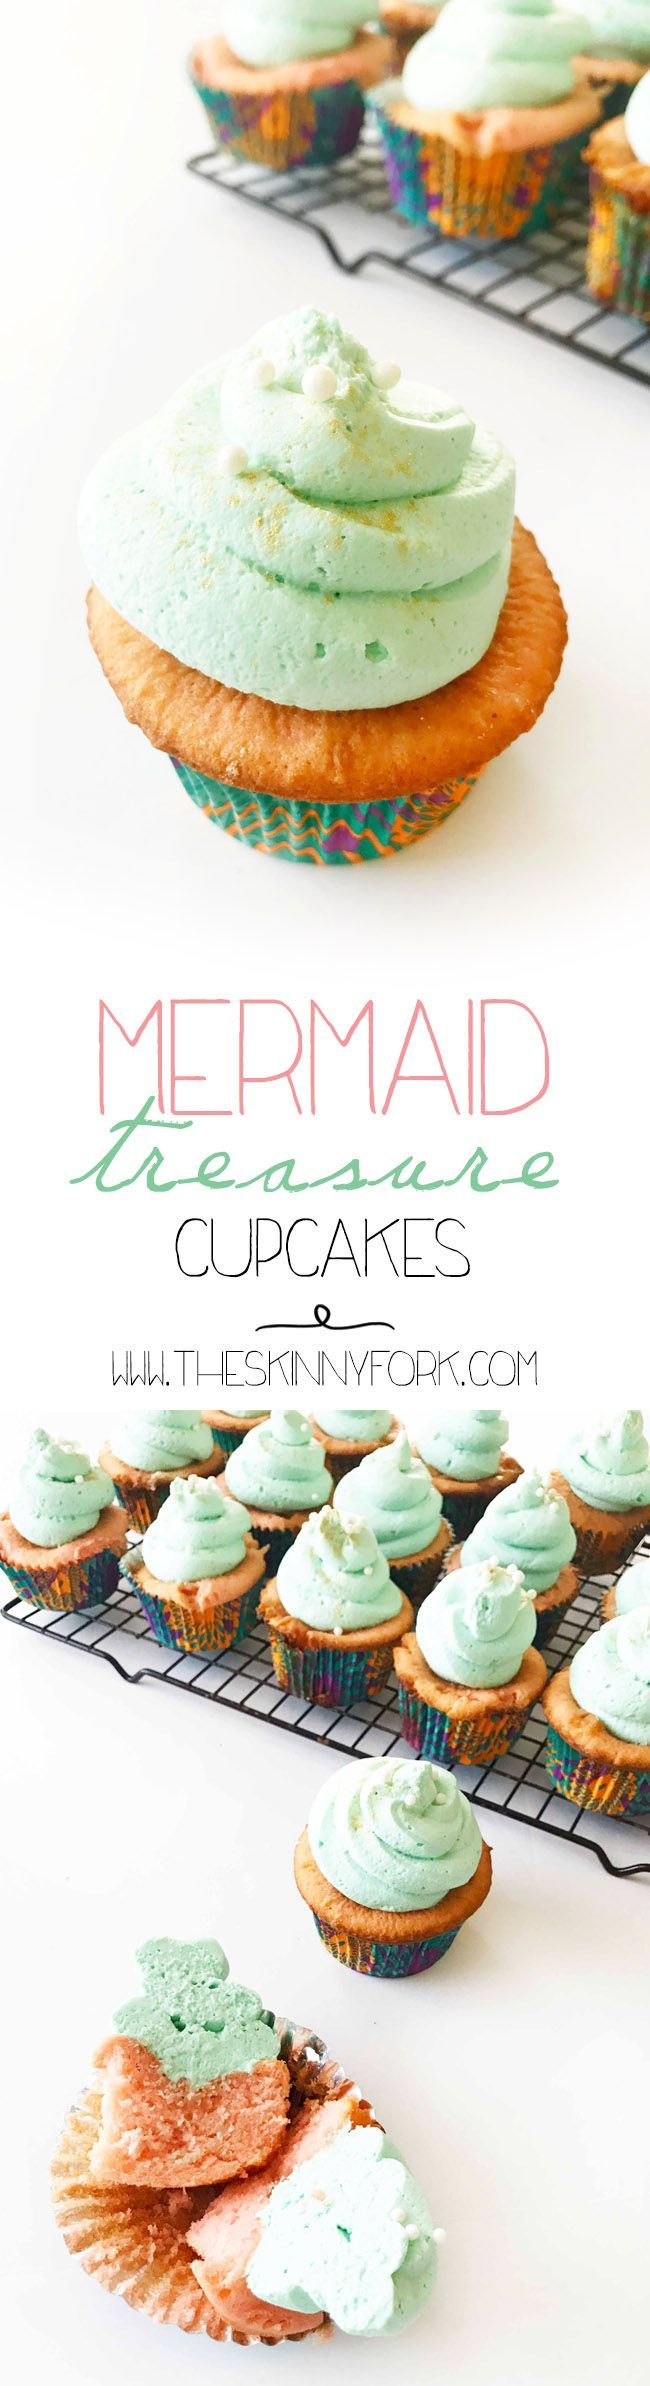 You've got to try these NEW Mermaid Treasure Cupcakes! Strawberry marshmallow cake with a whipped cream 'cheesecake' frosting. TheSkinnyFork.com | Skinny & Healthy Recipes